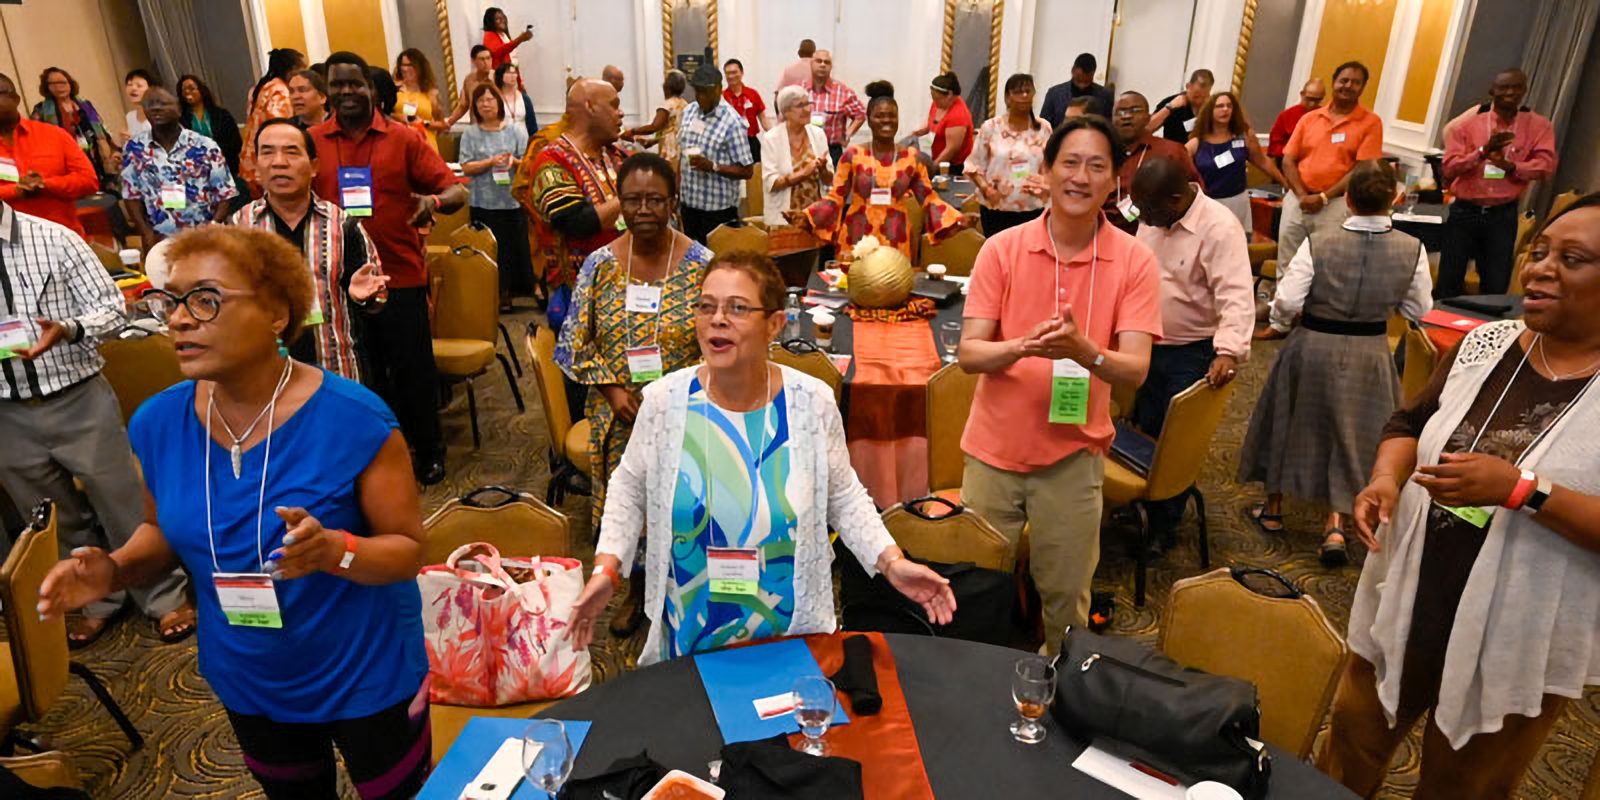 About 200 Presbyterians attended the Convocation for Communities of Color just before Big Tent officially opened Thursday. (Photo by Rich Copley)